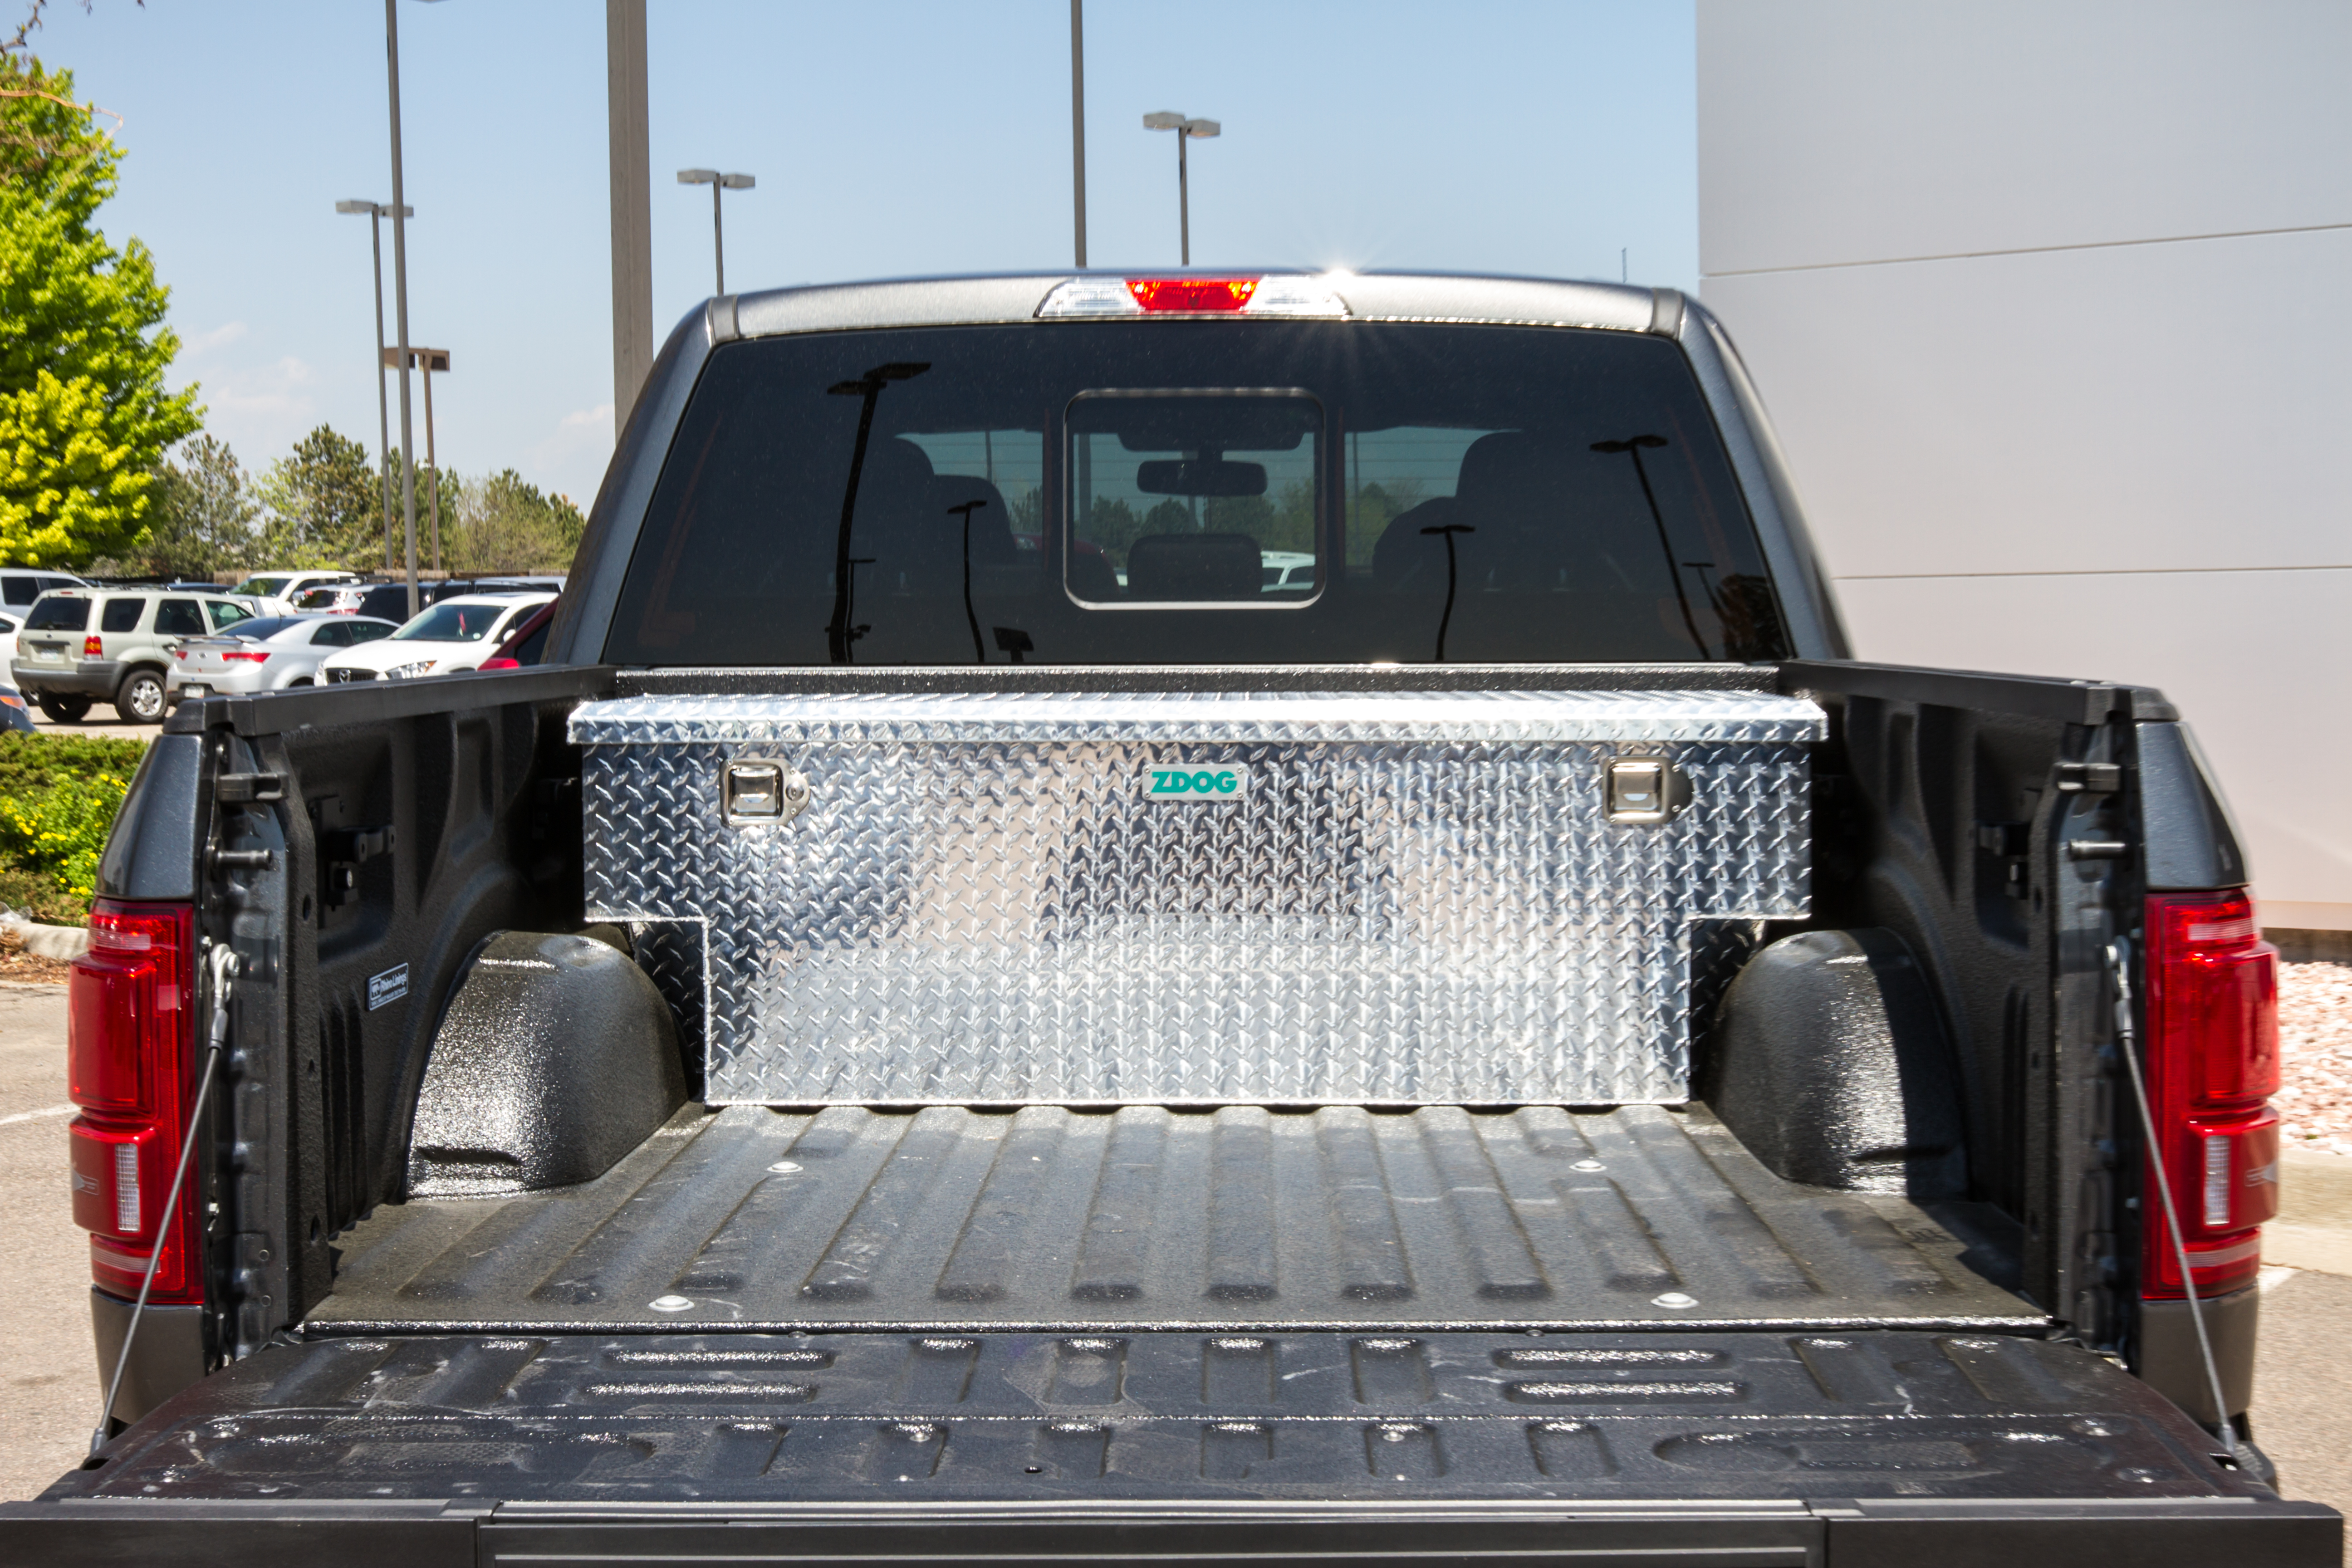 Ford F 150 Truck Bed Dimensions >> ZDOG FF5-1000 (Ford F-150, 2015 or newer models) | ZDOG Truck Took Boxes